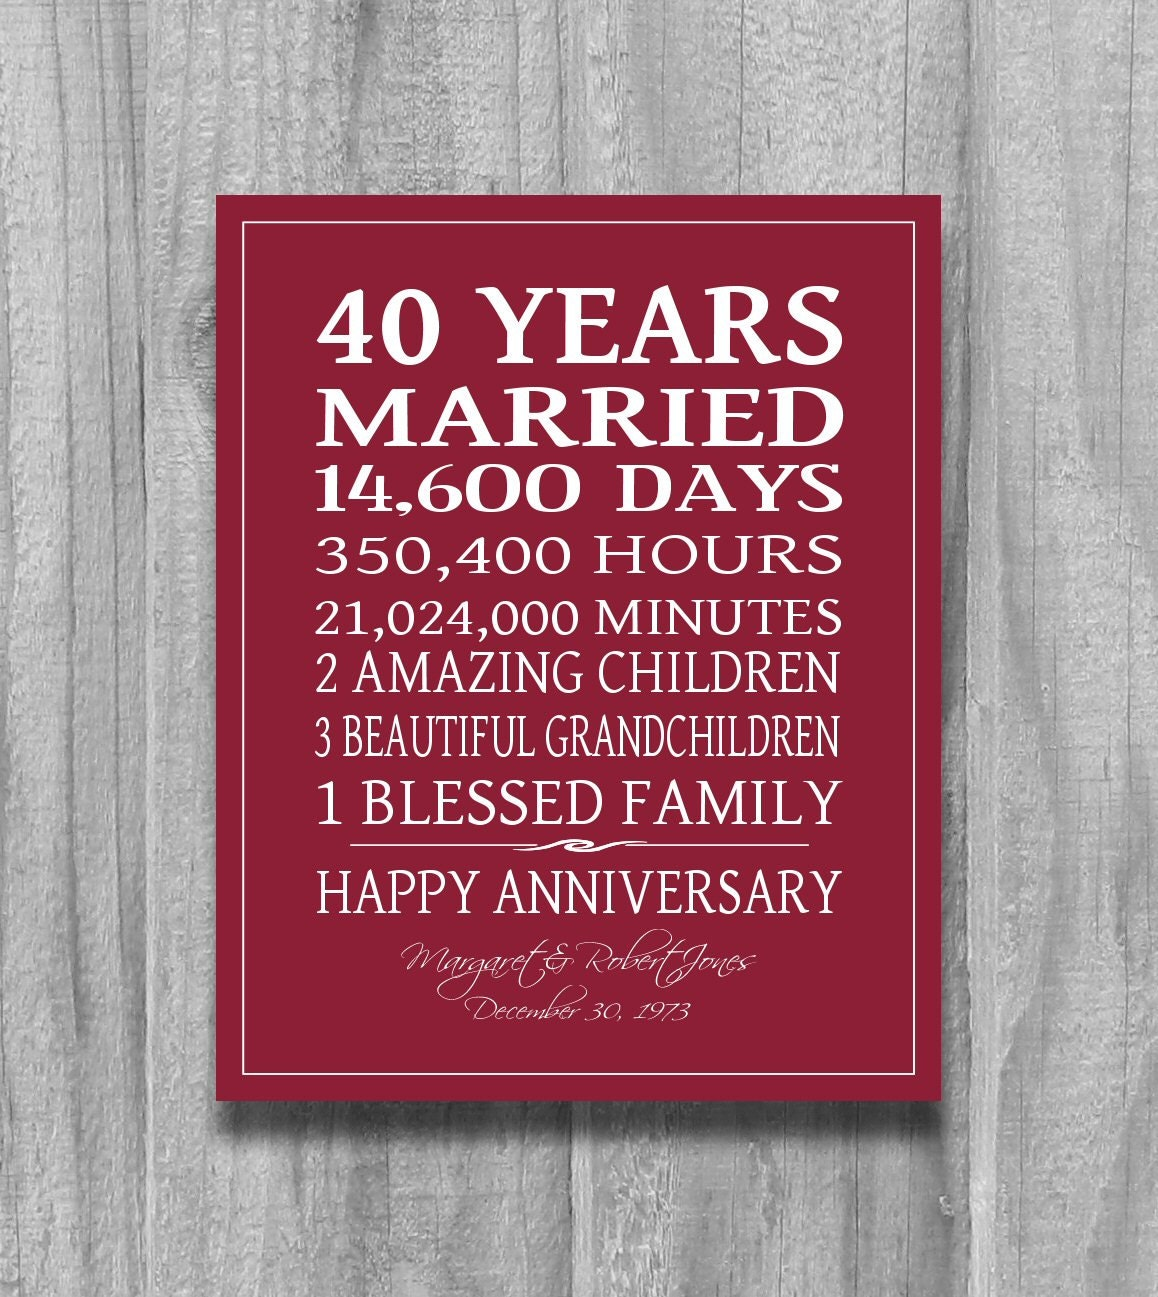 Wedding Anniversary Gifts For Parents 40 Years : RUBY 4Oth Anniversary Gift Personalized by PrintsbyChristine